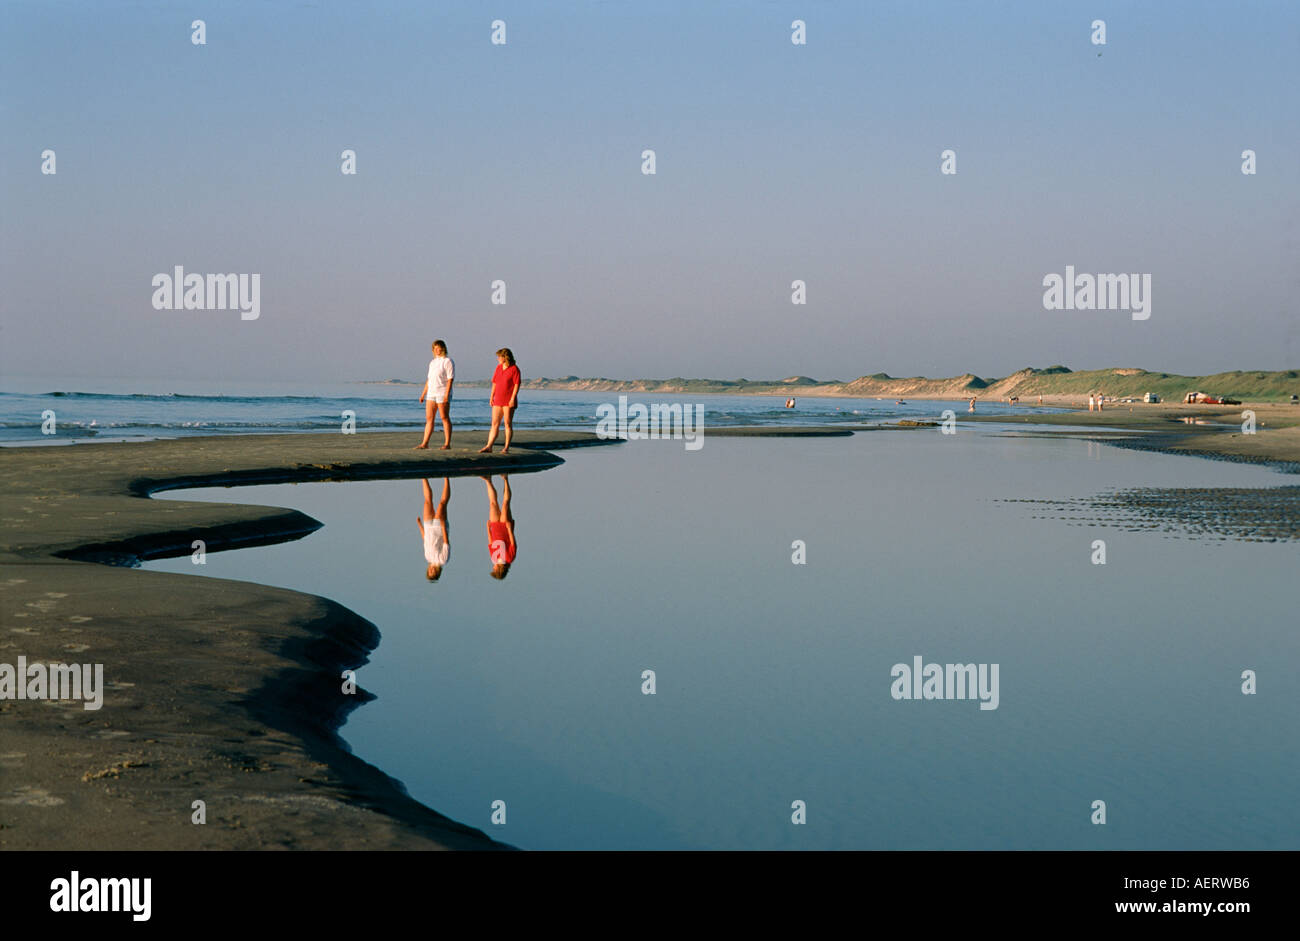 Beach walk at Skagern Denmark - Stock Image